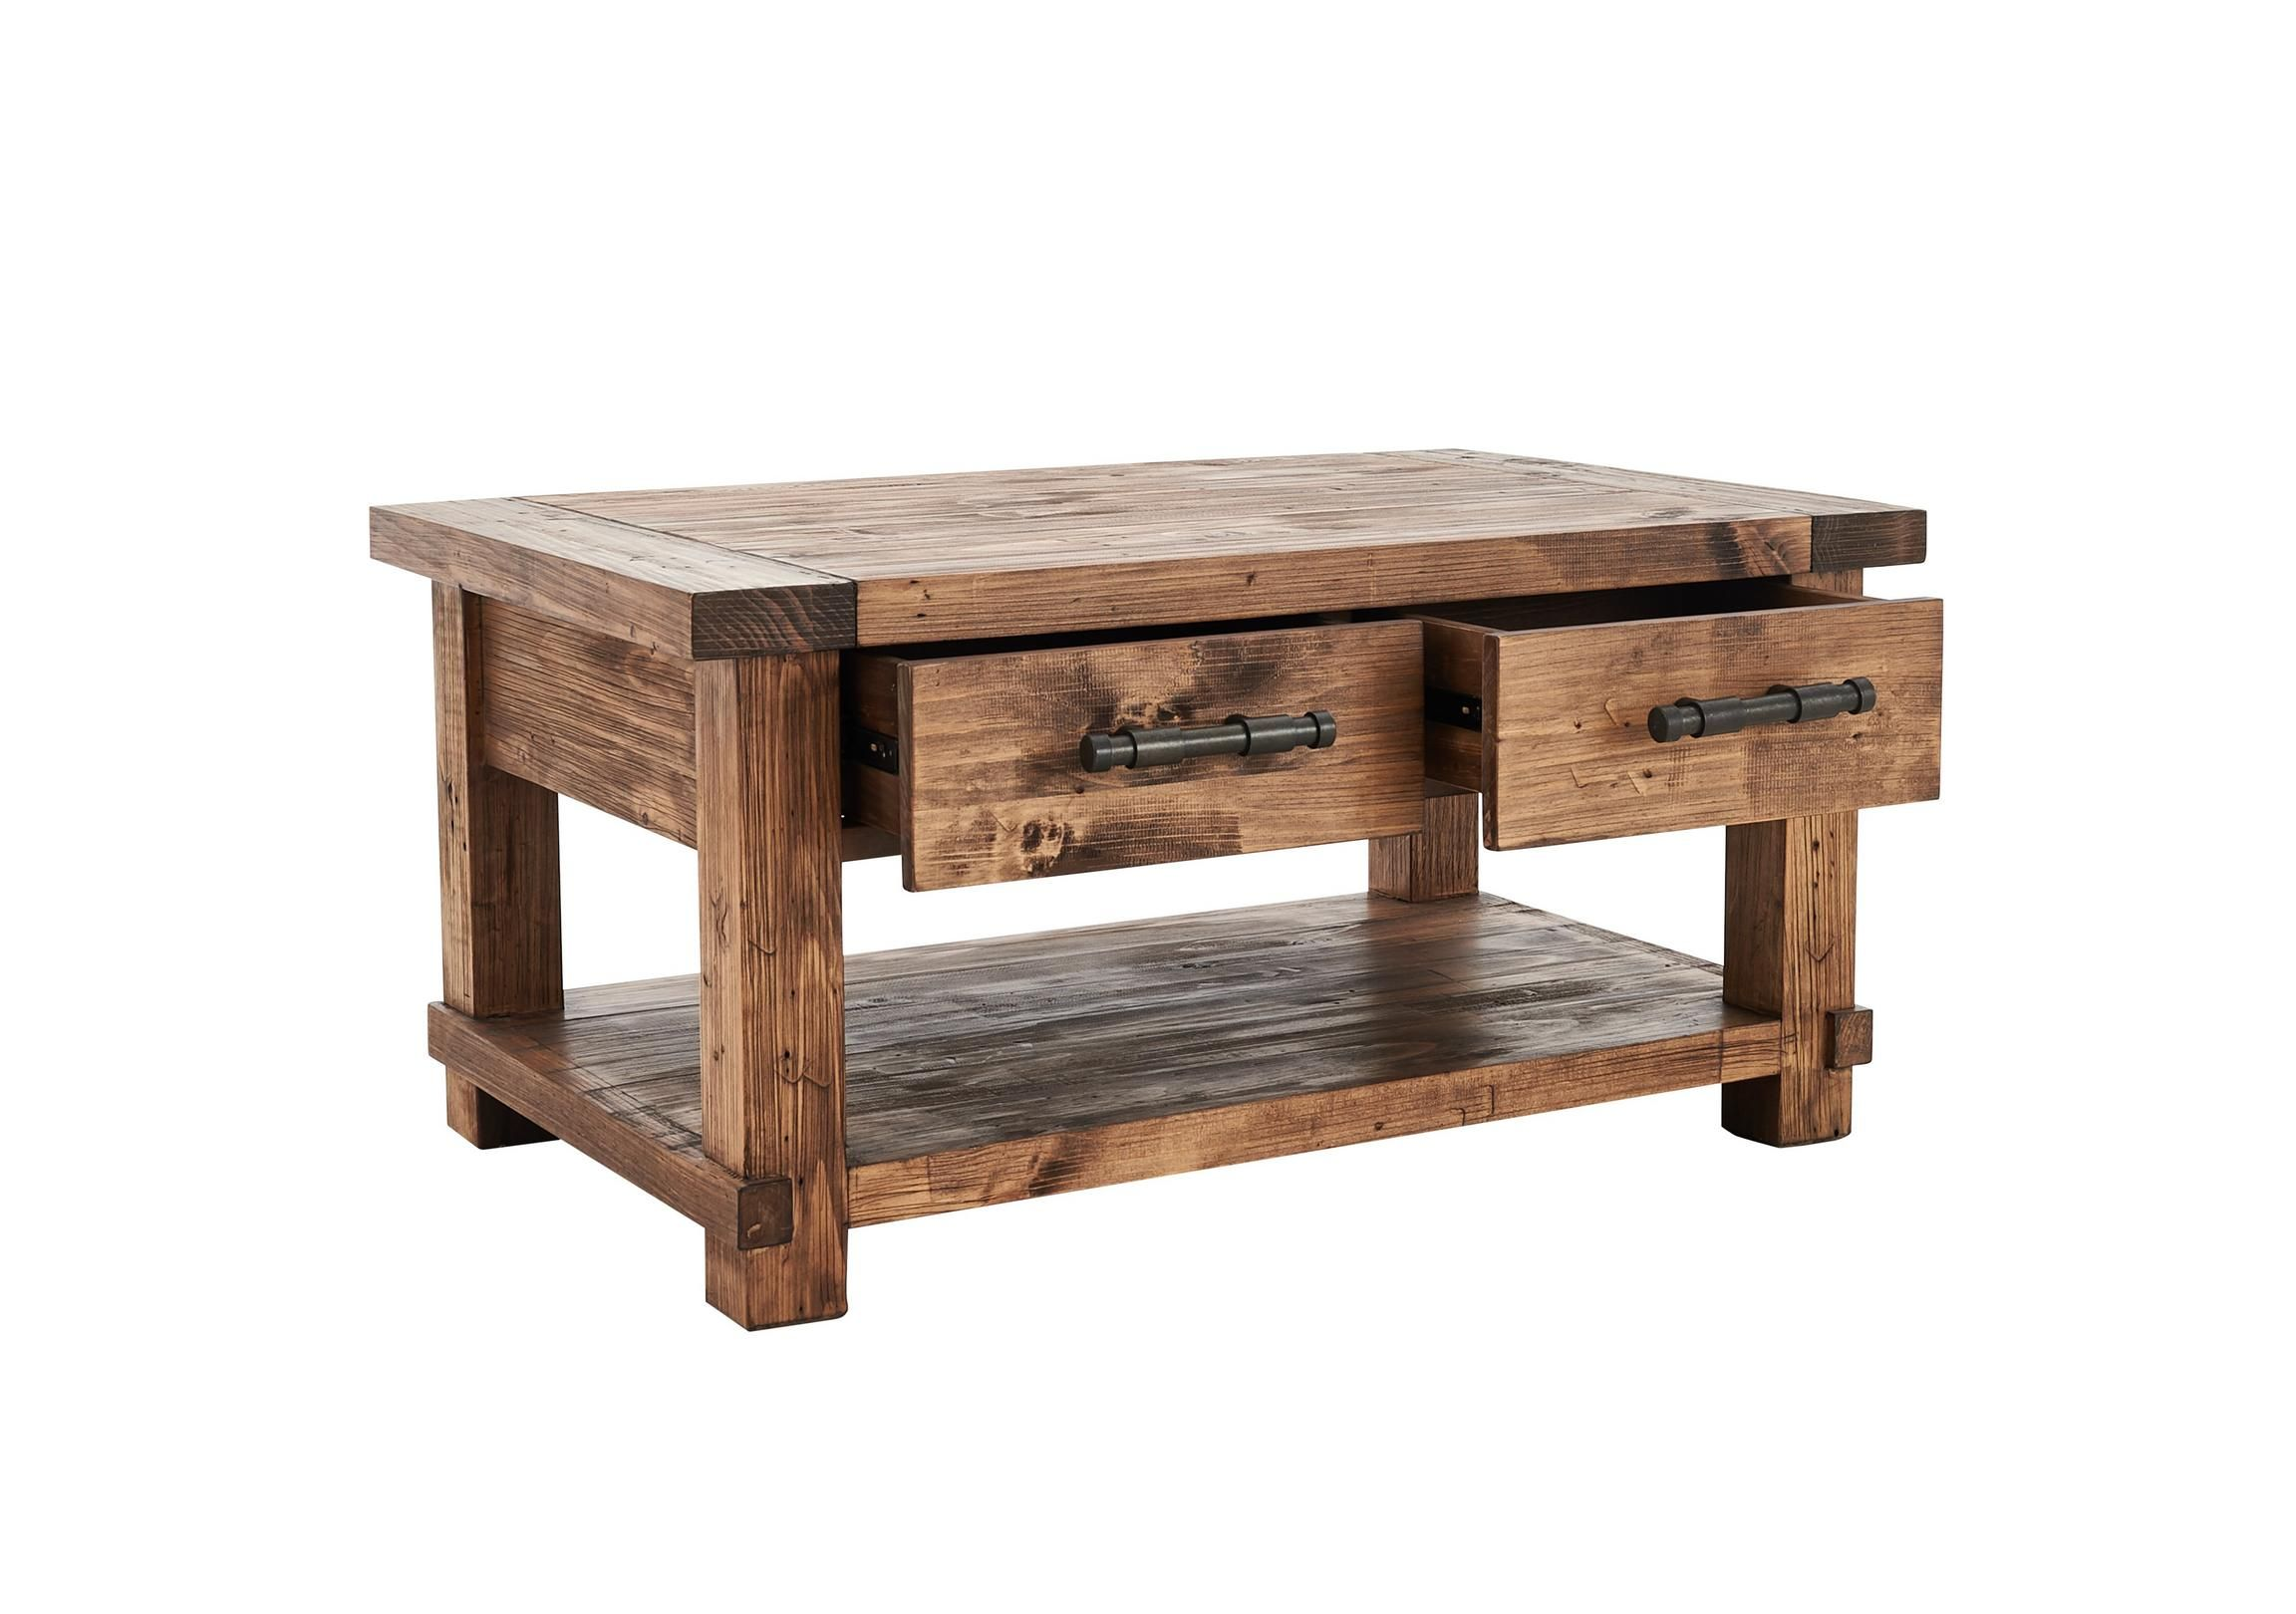 Eco small wooden coffee table furniture village 1 for eco small wooden coffee table furniture village geotapseo Choice Image